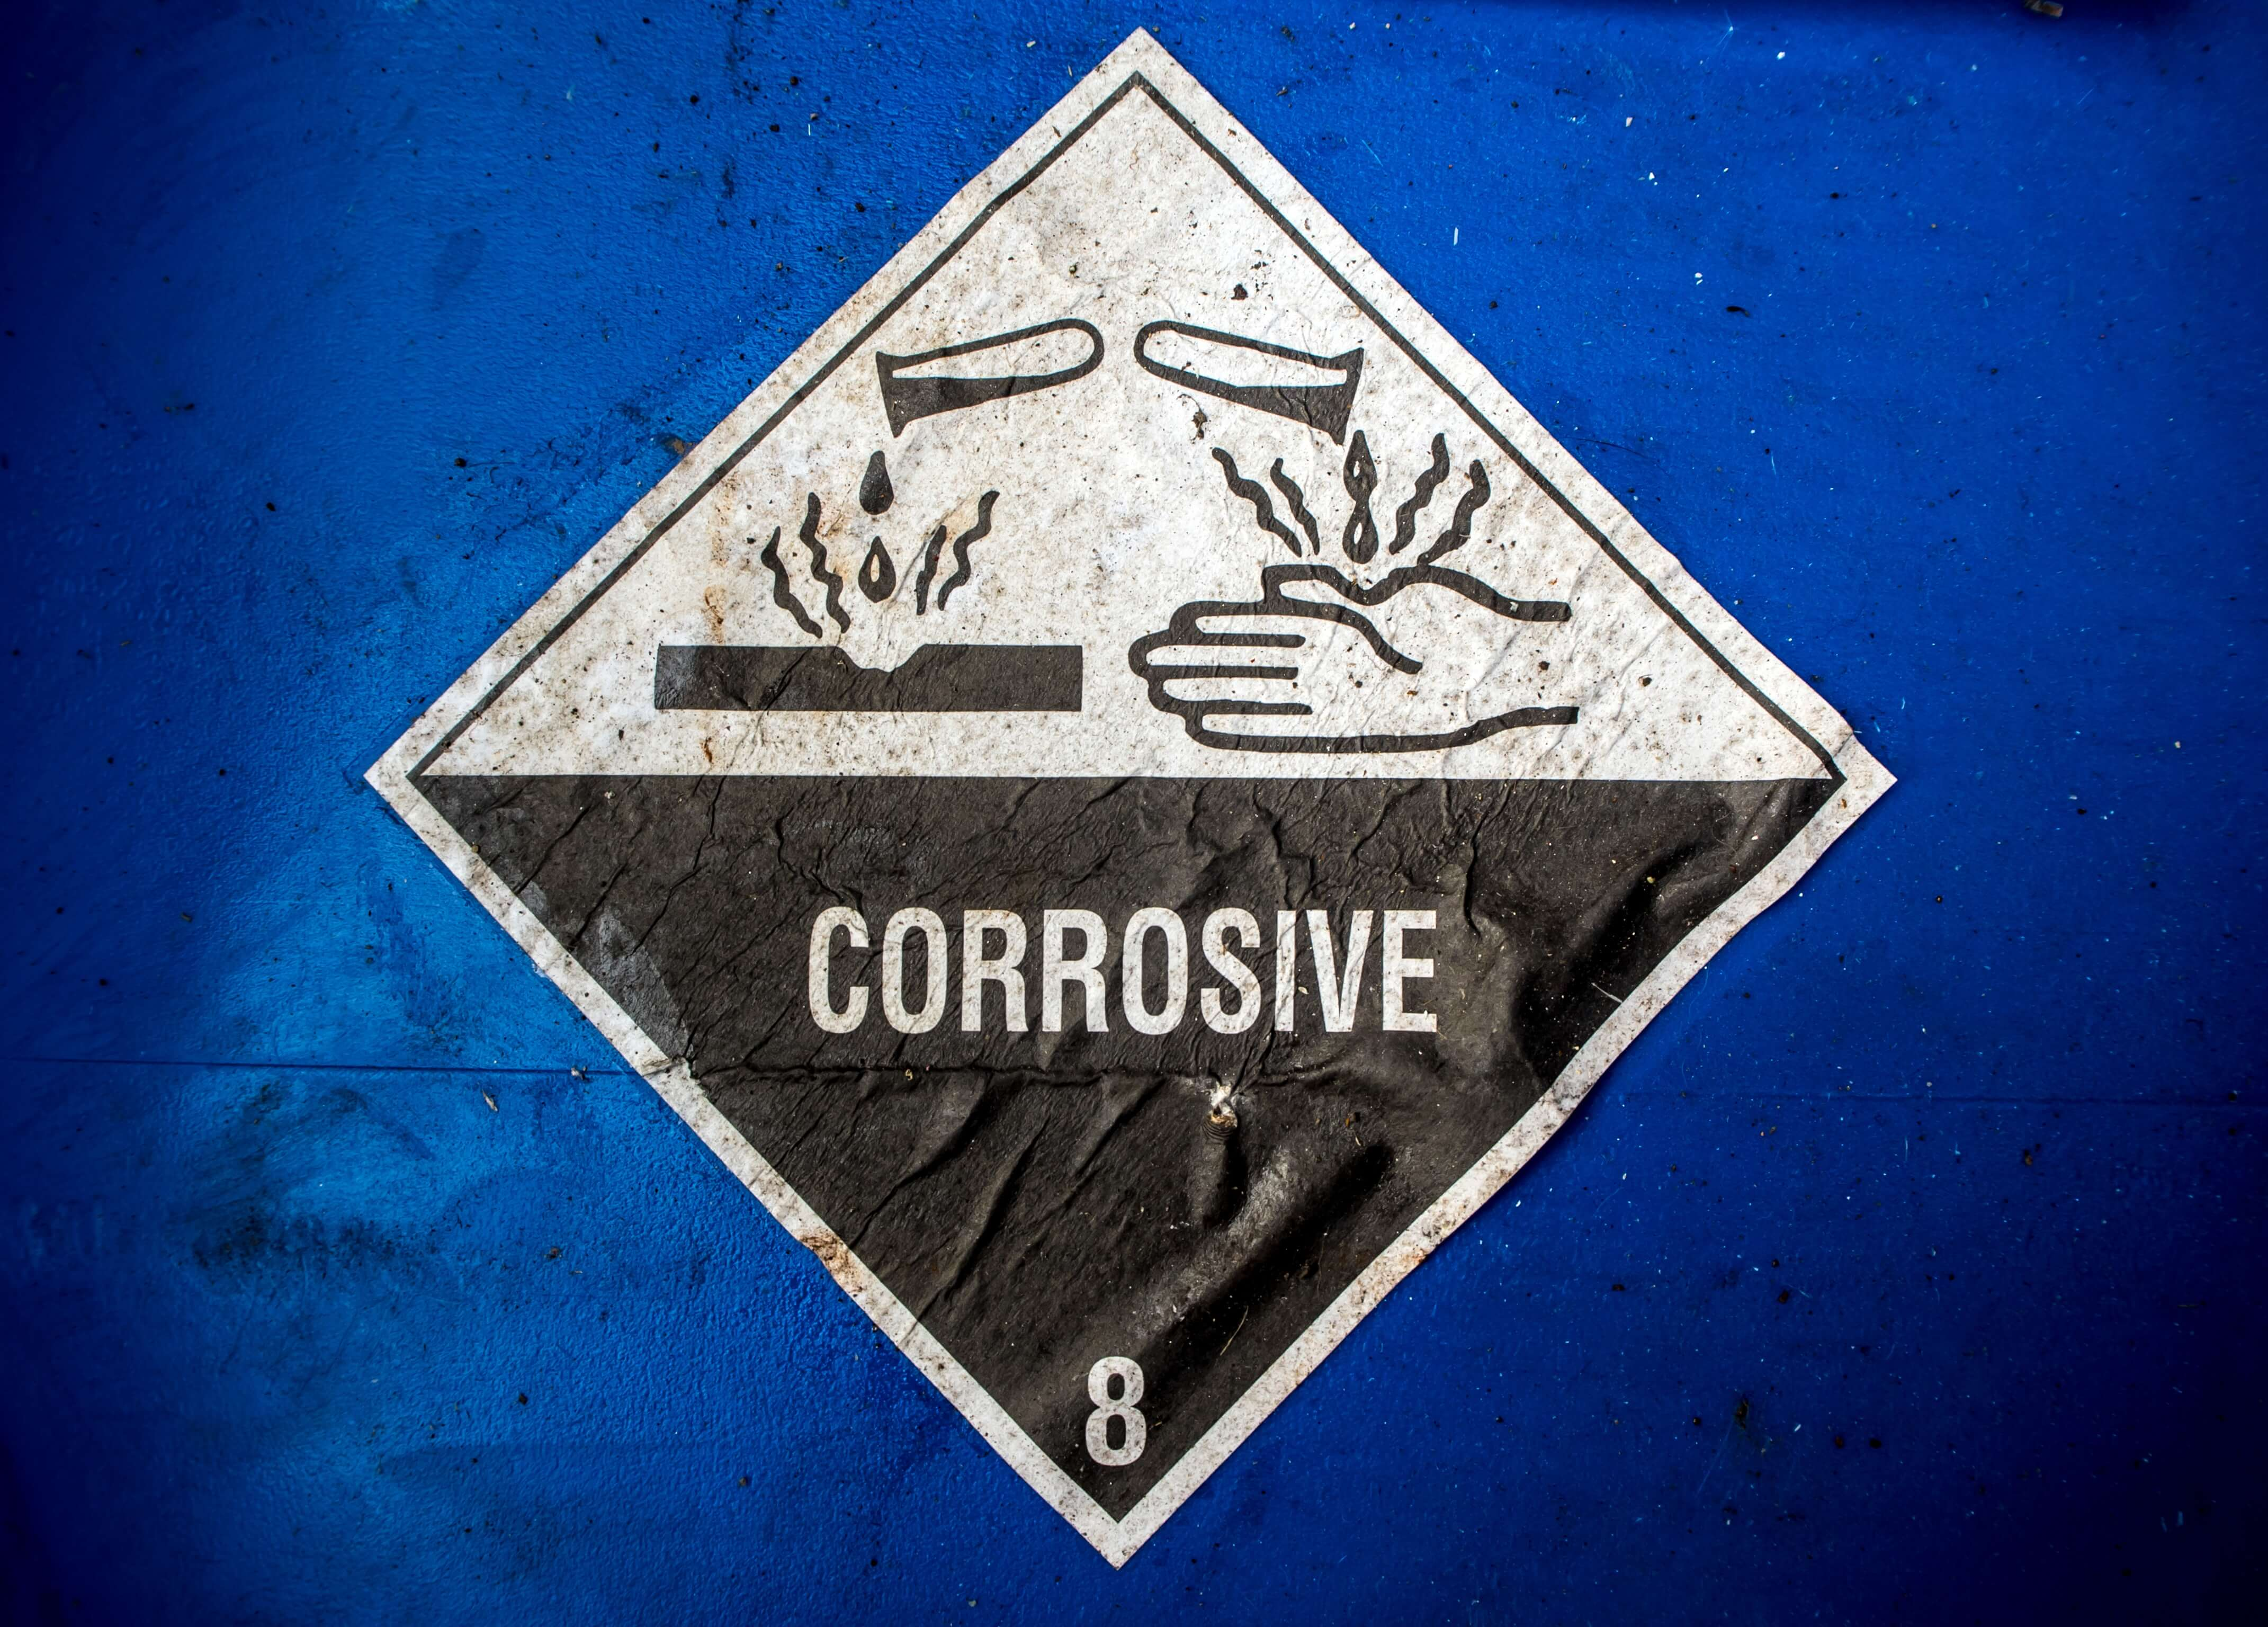 What are Corrosive Substances?